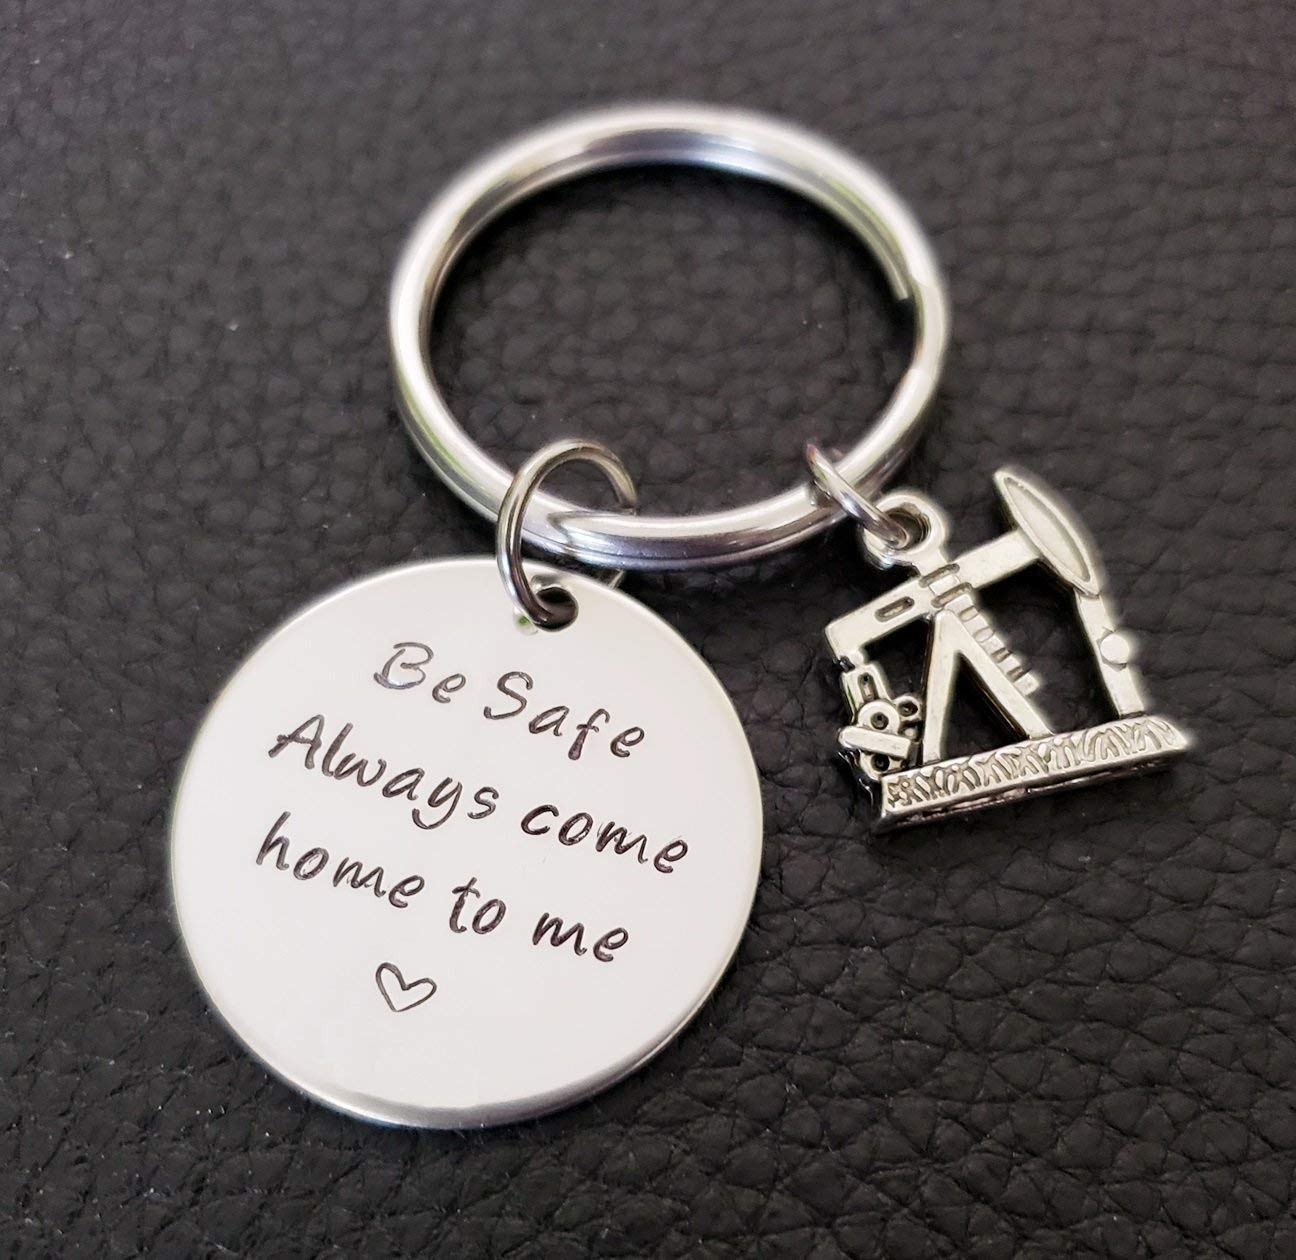 Oil Field Worker Be Safe Key Chain with Oil Well, Always Come Home to Me, Oil Field Wife Be Safe Gift